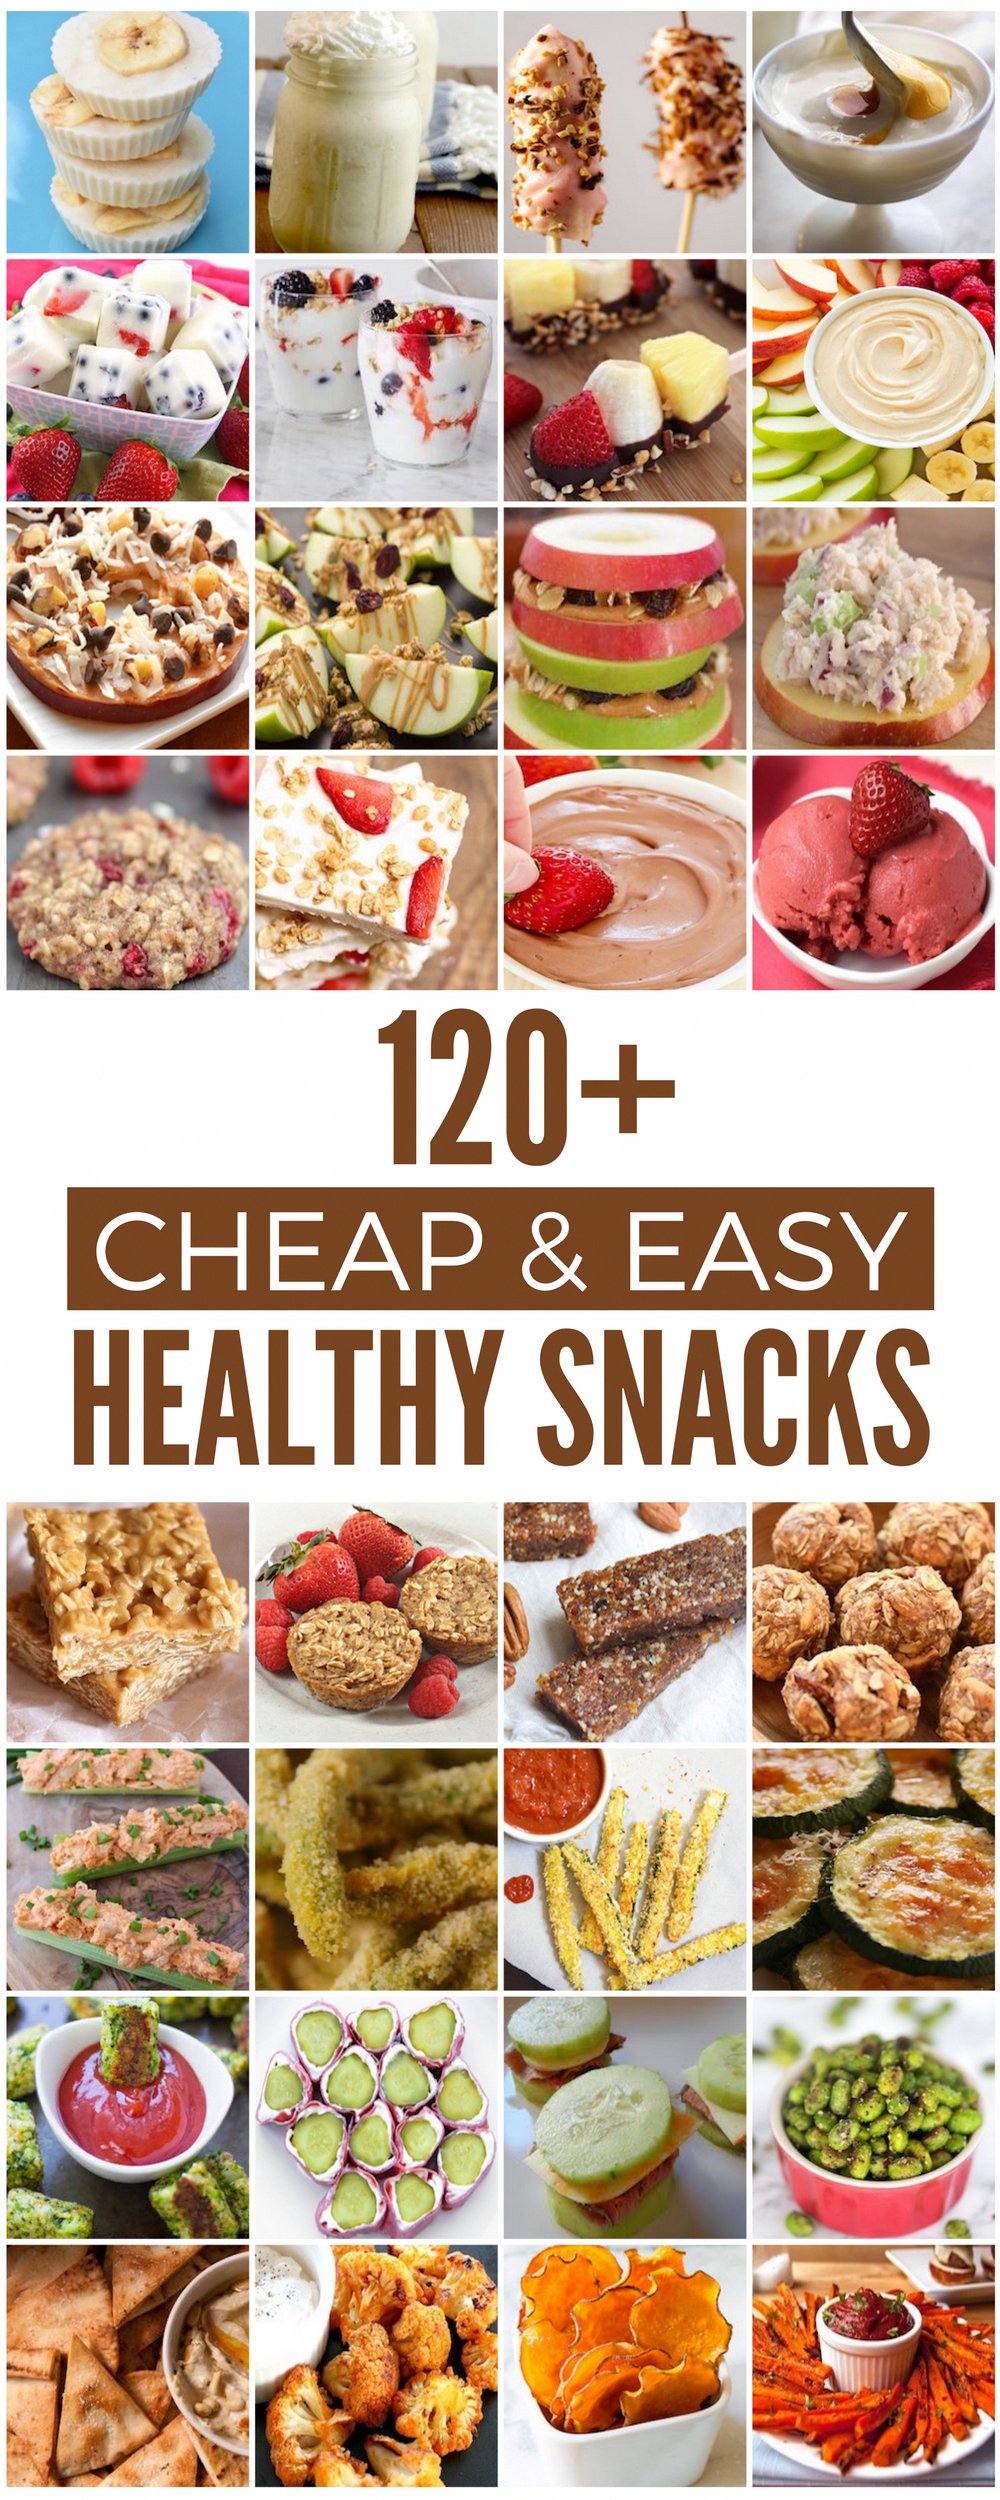 Shares Eat Better For Less With These Cheap And Healthy Snack Recipes Whether You Are Lo Cheap Healthy Snacks Cheap Easy Healthy Snacks Healthy Snacks Recipes